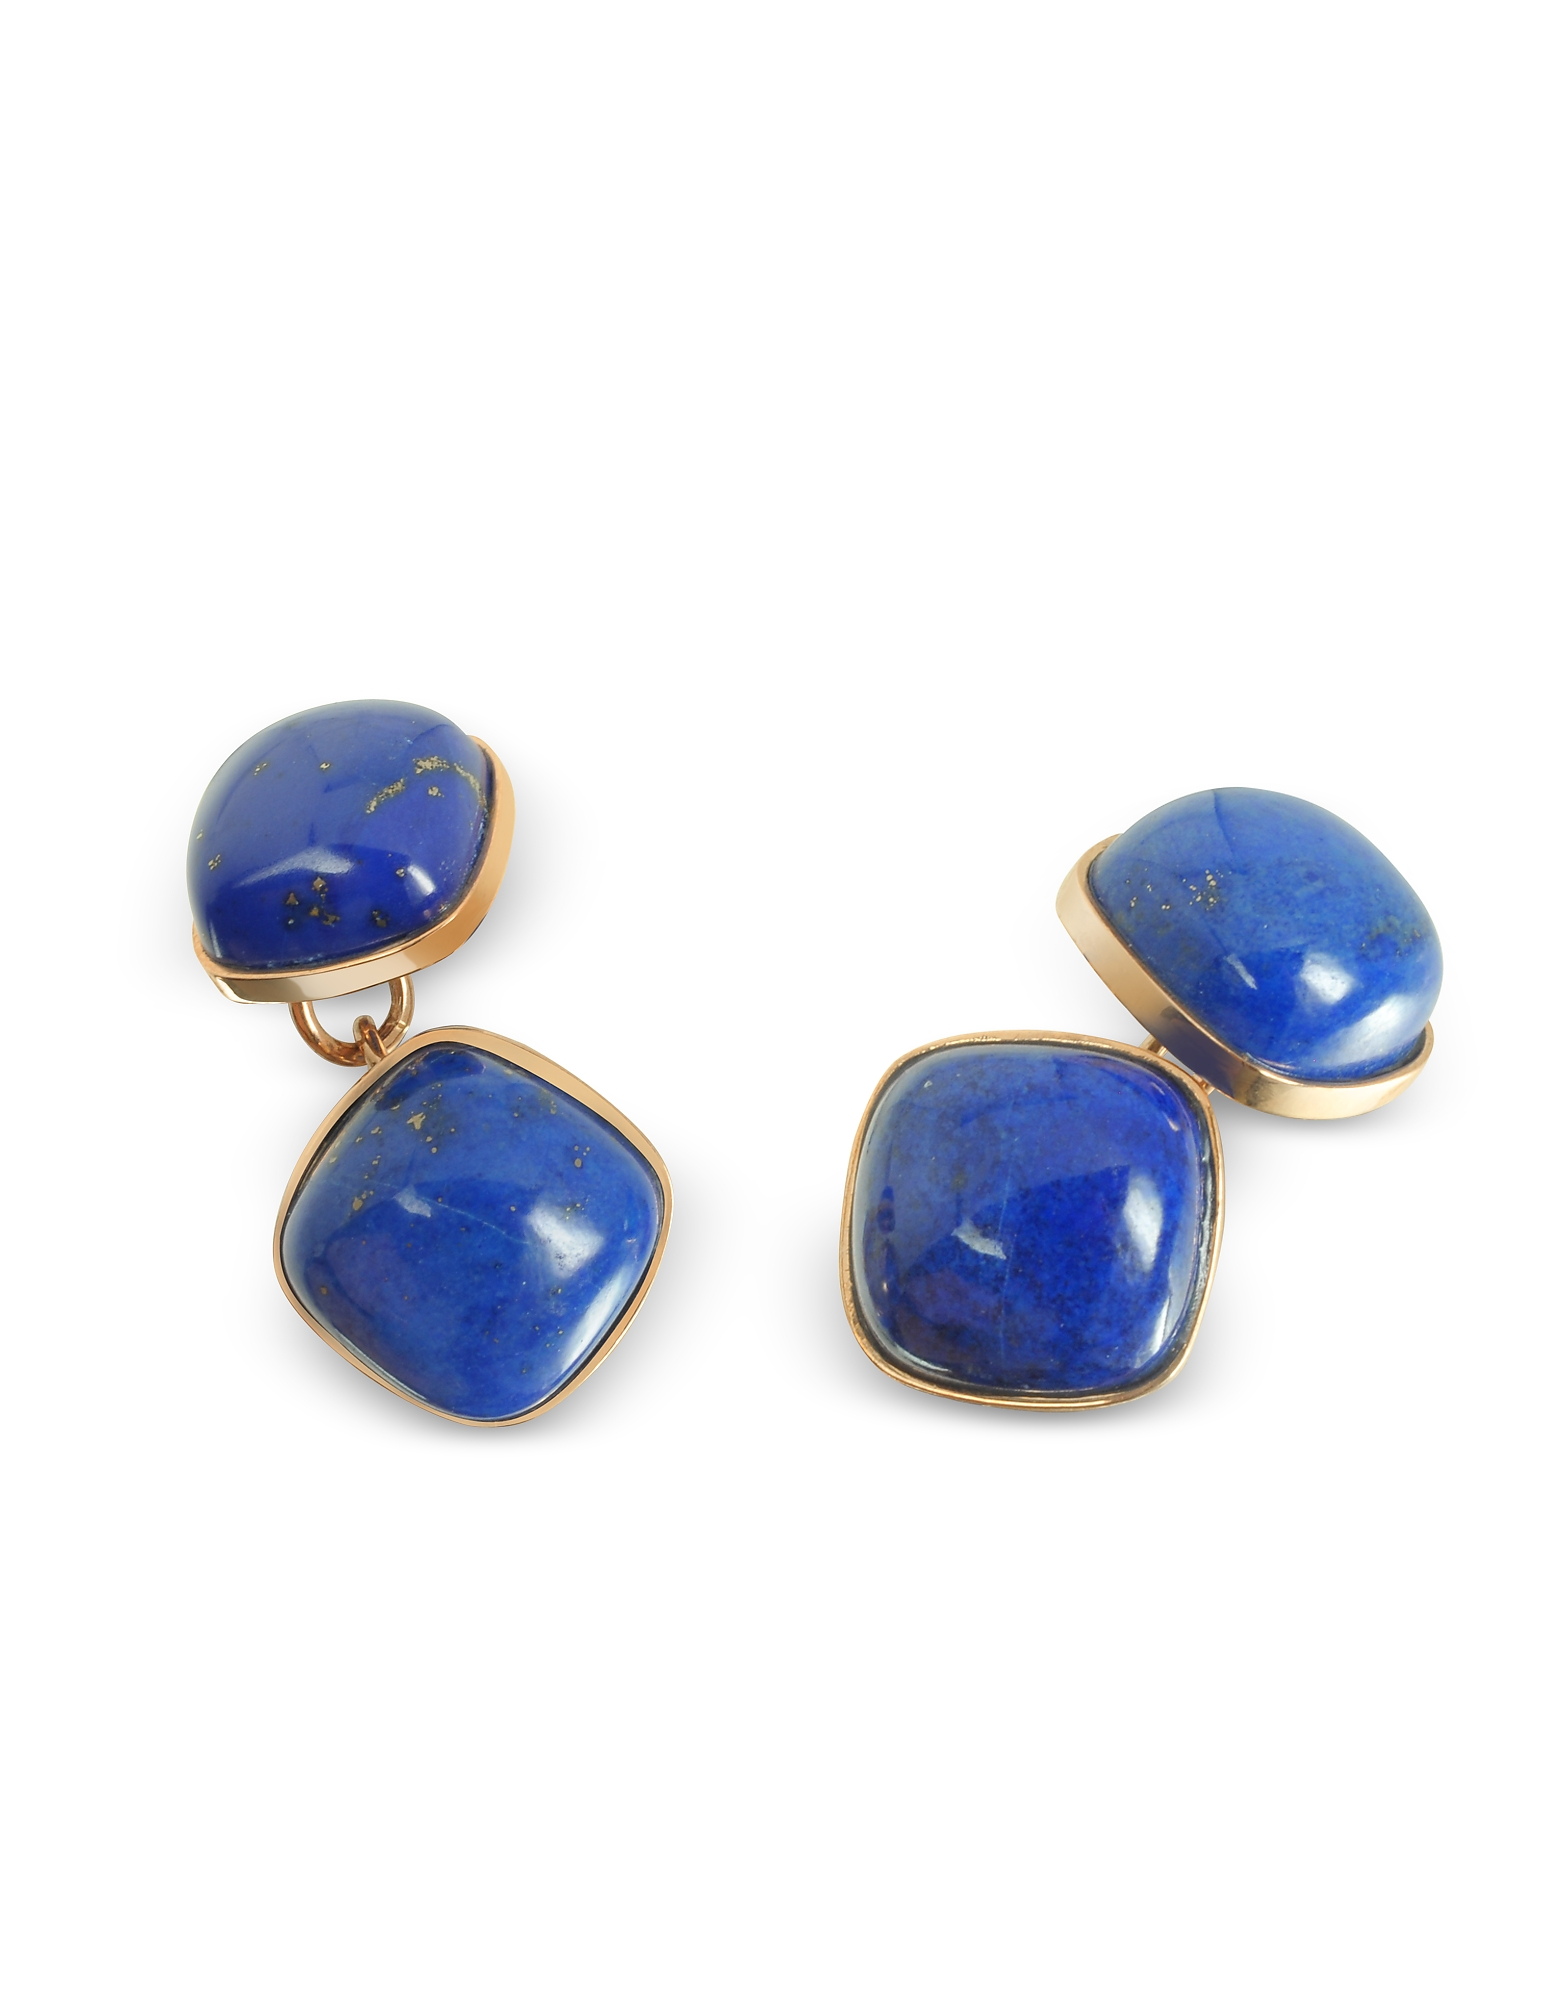 These classic 18K gold square cufflinks are adorned by beautiful Lapis Lazuli stones. An extraordina